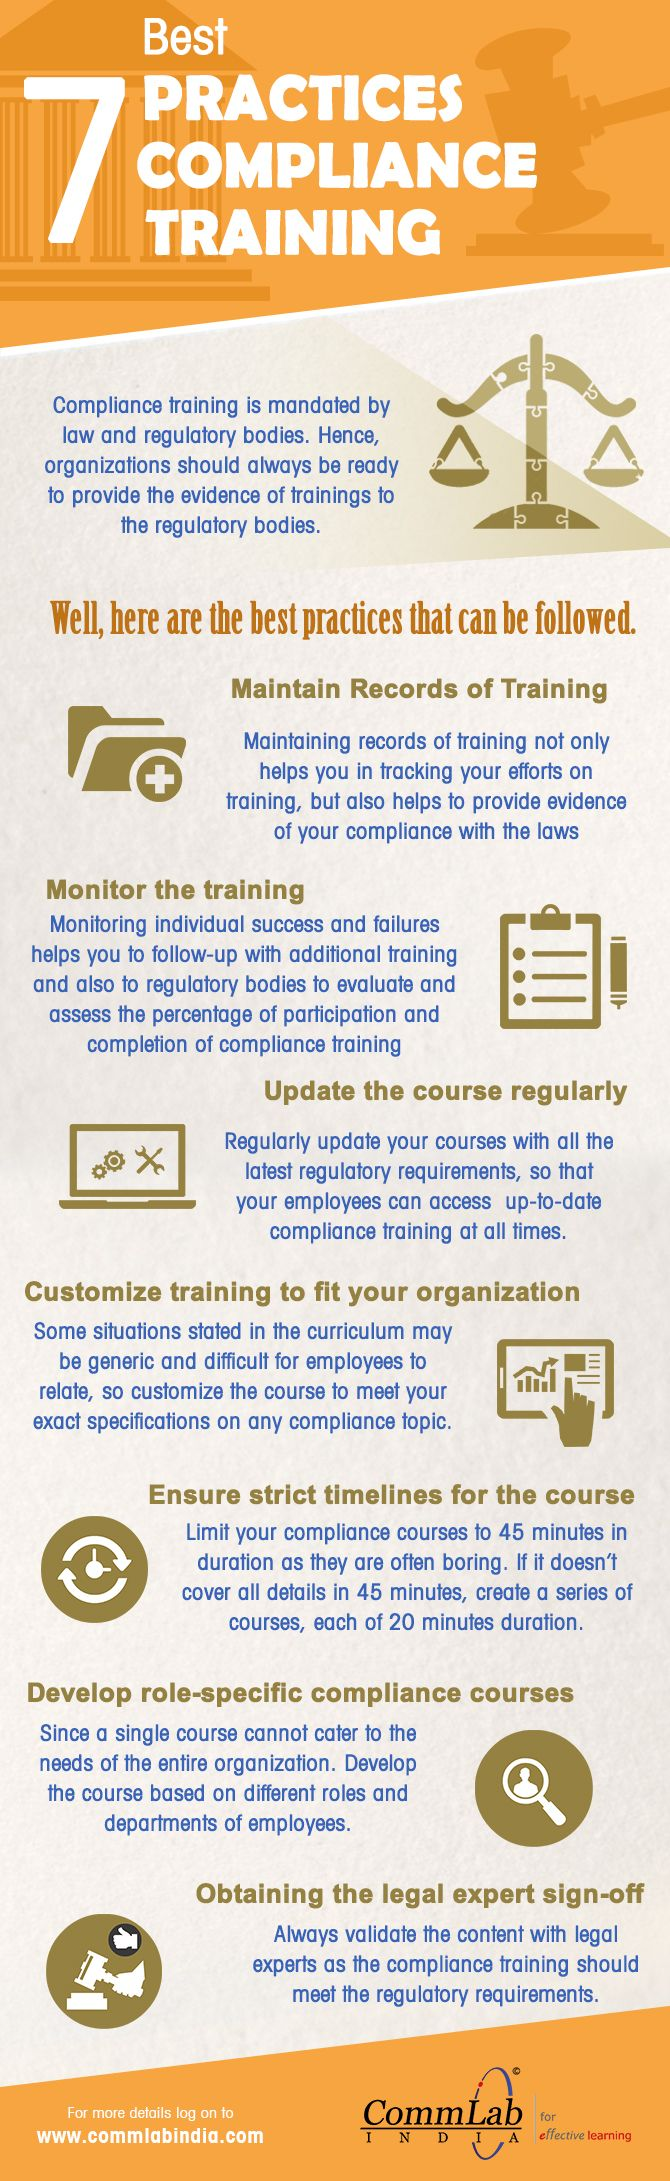 Creating a Good Compliance Training Program [Infographic]